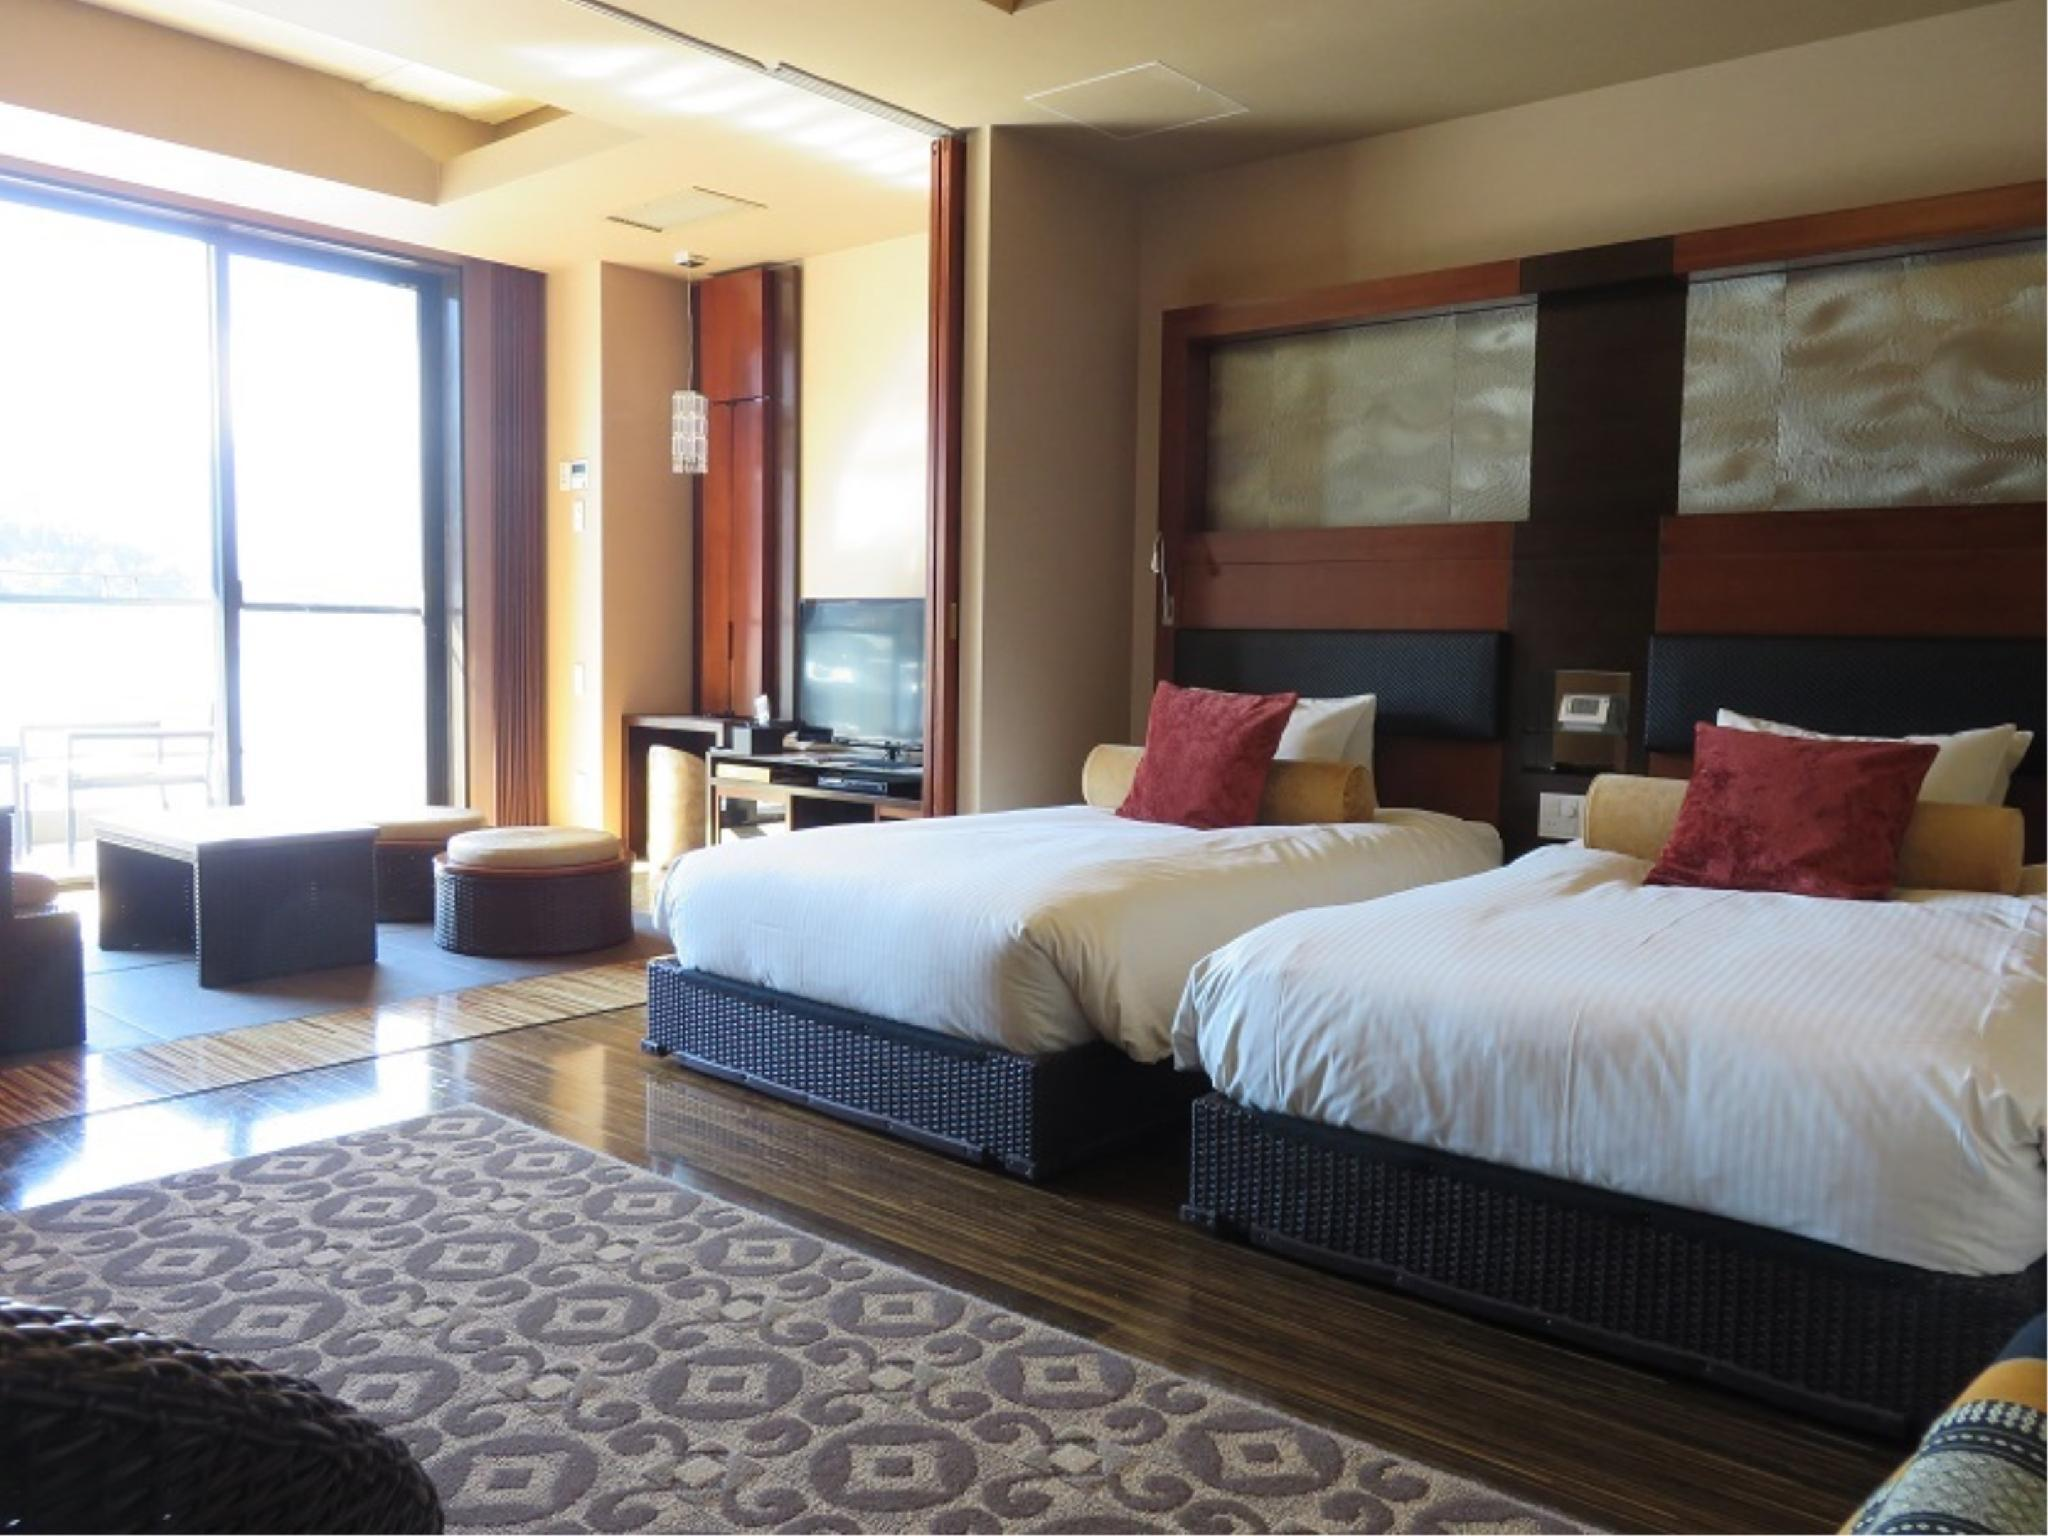 다다미 침대 객실(플라자관) (Executive Large Japanese/Western-style Room (2 Beds, Plaza Wing))